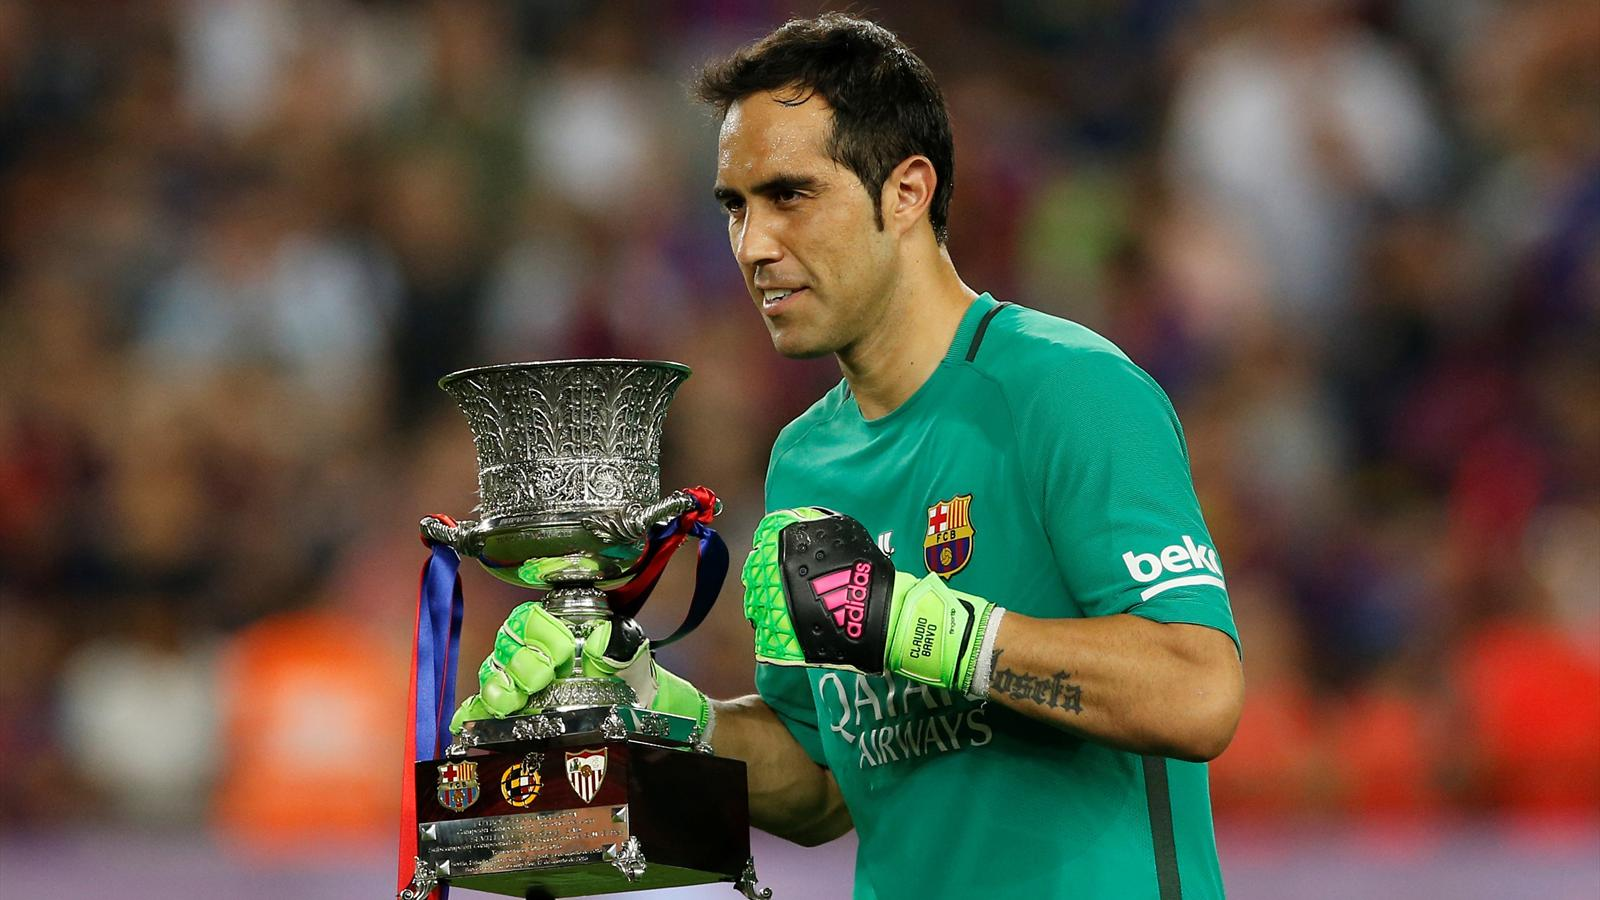 Barcelona confirm agreement to sell Claudio Bravo to Man City